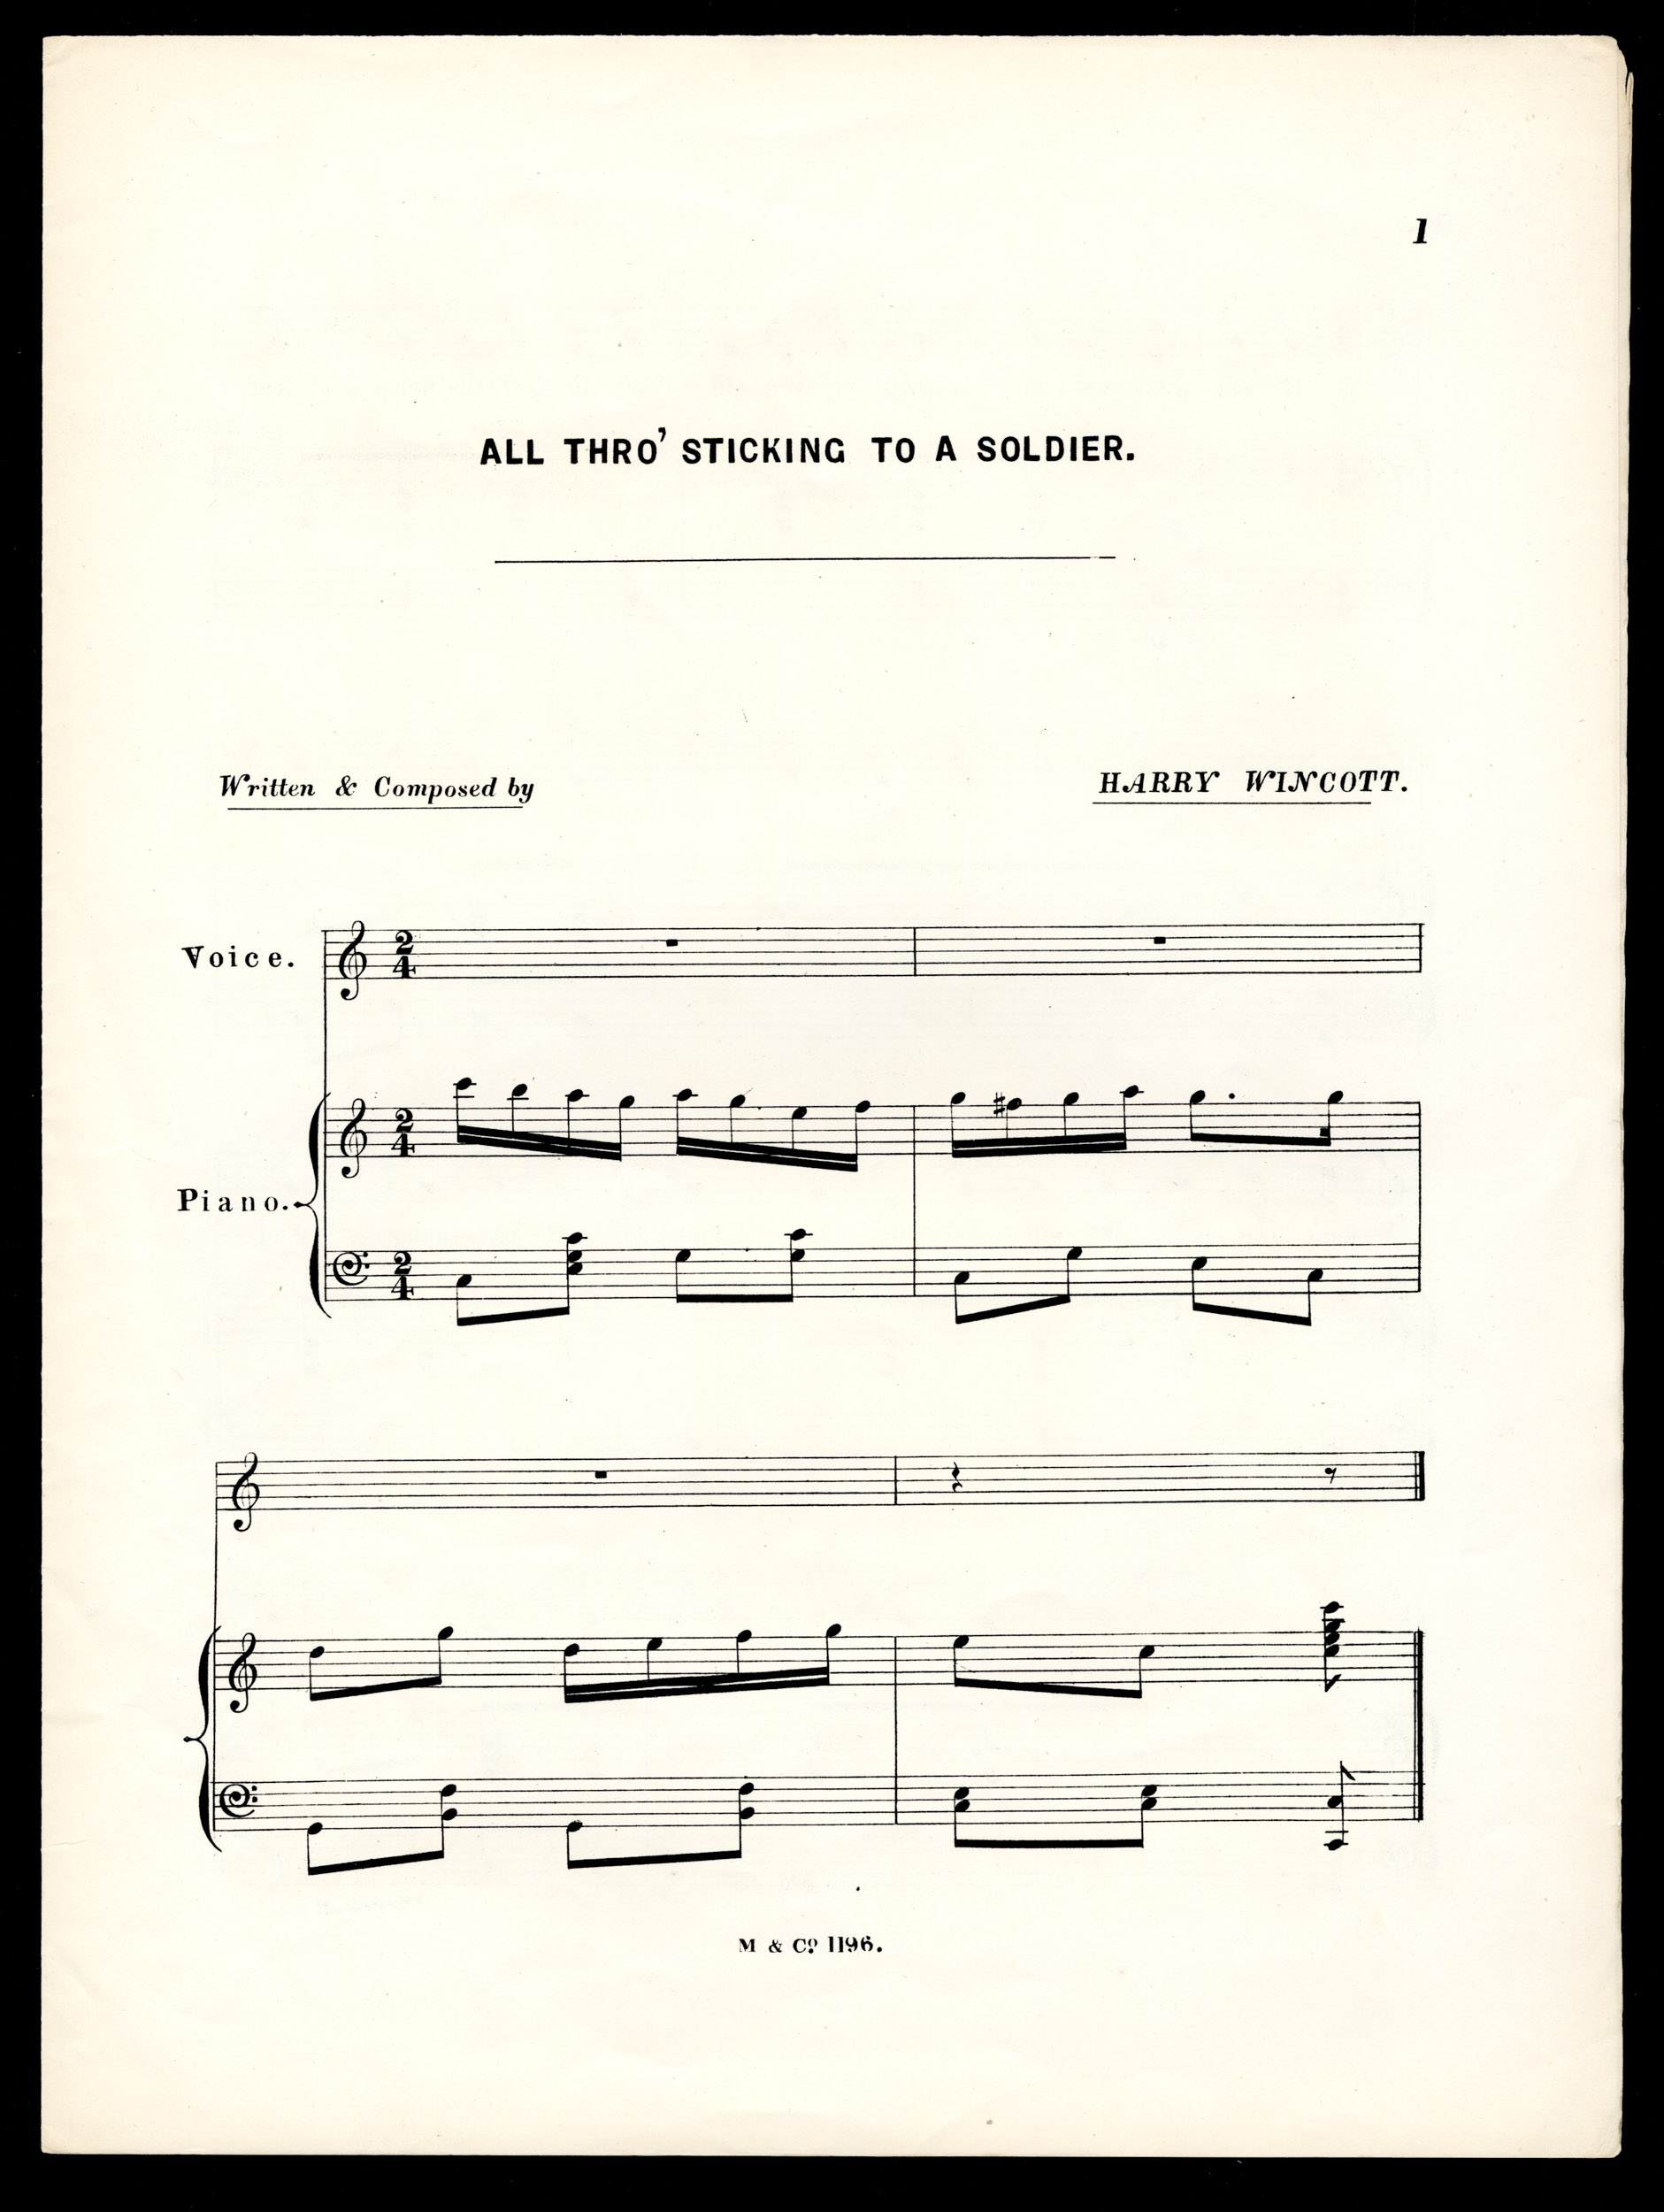 Musical score for 'All Thro' Sticking to a Soldier' sung by Miss Ada Lundberg, from the Max Tyler Music Hall collection